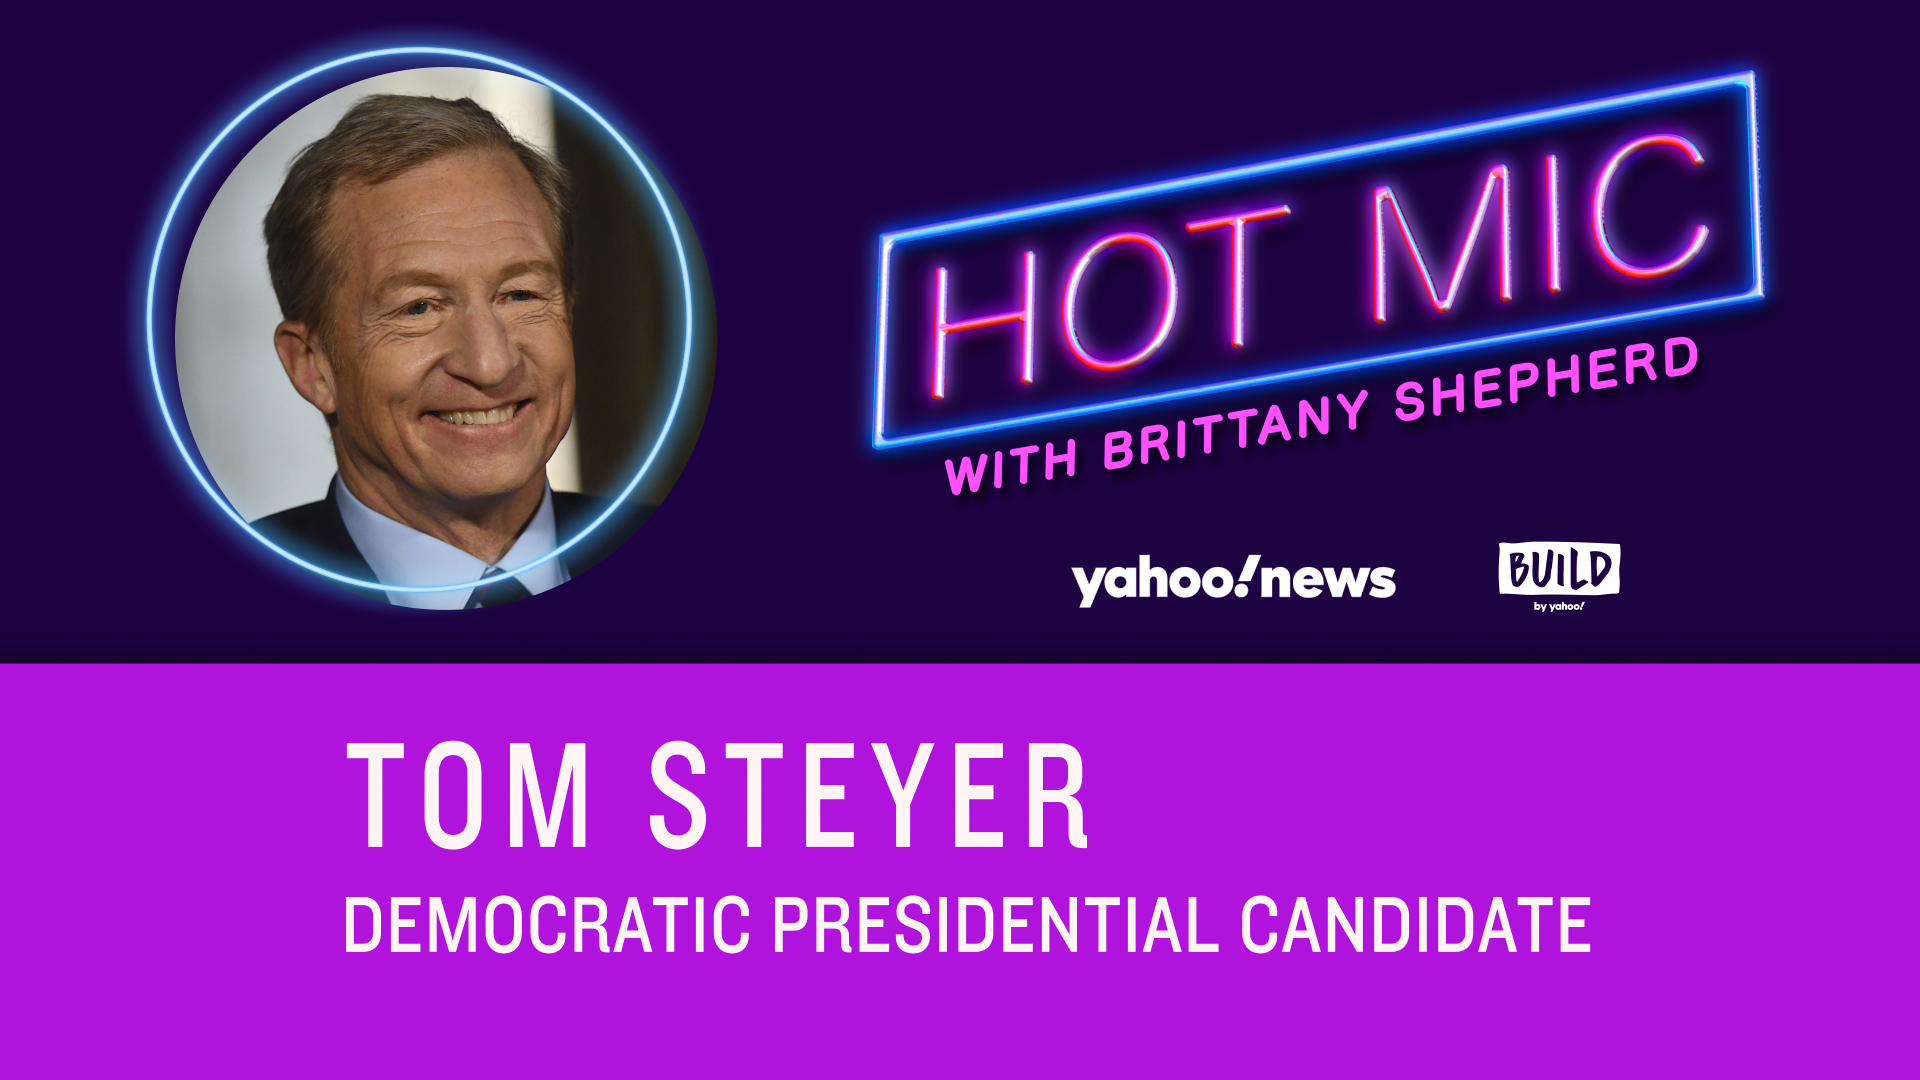 FULL INTERVIEW: Tom Steyer on Hot Mic With Brittany Shepherd